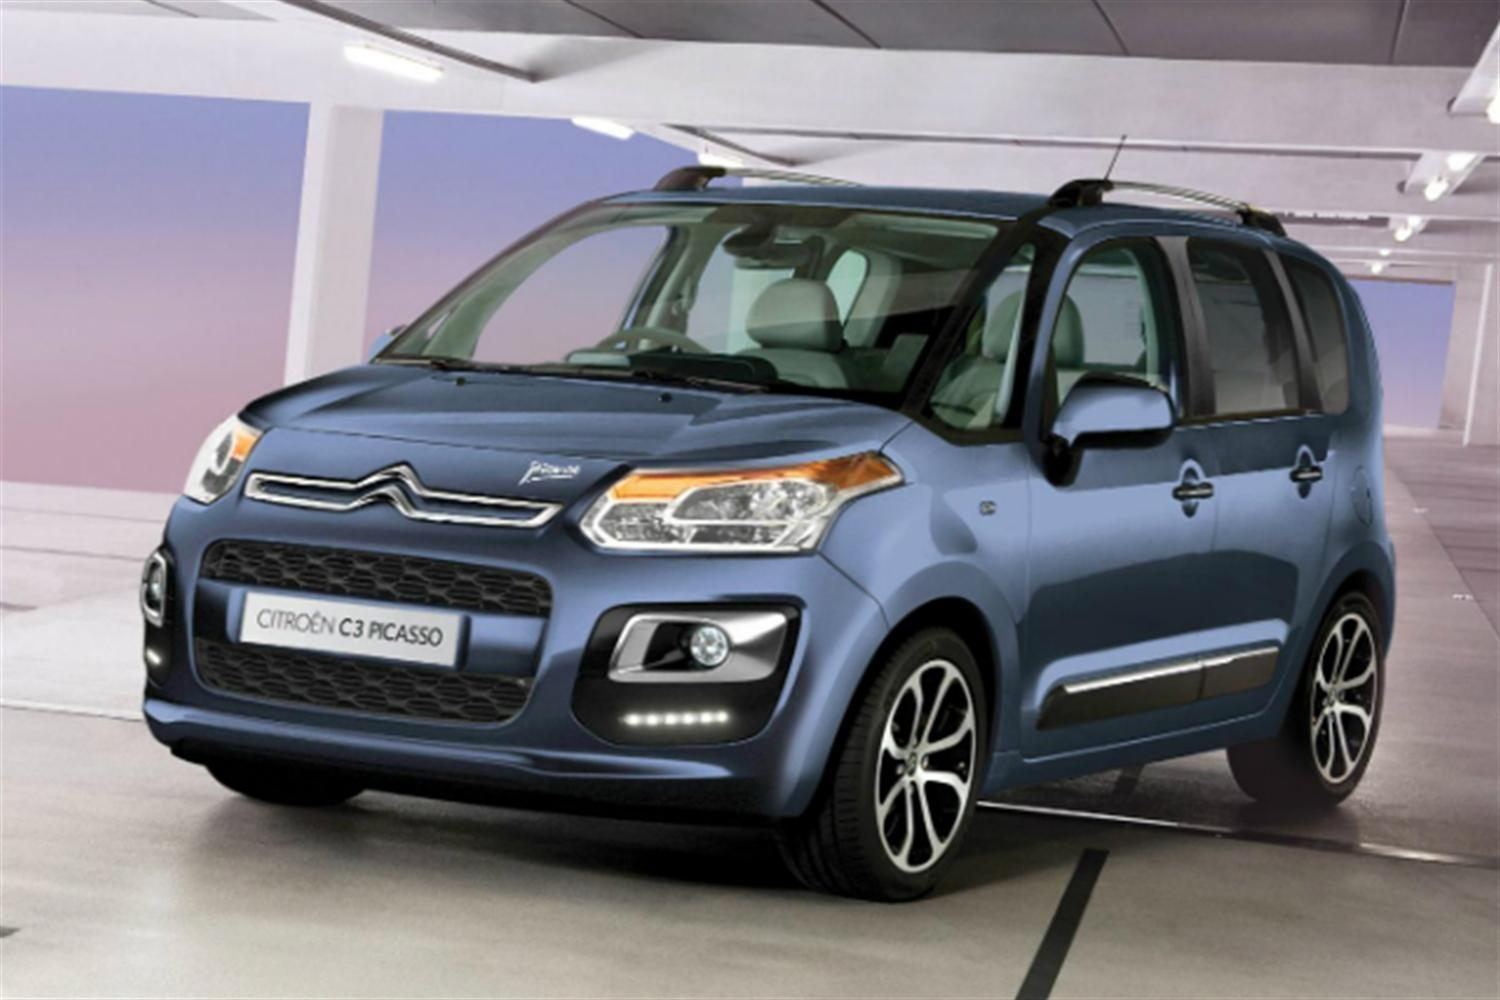 Citroen C3 Picasso Gets Style Overhaul